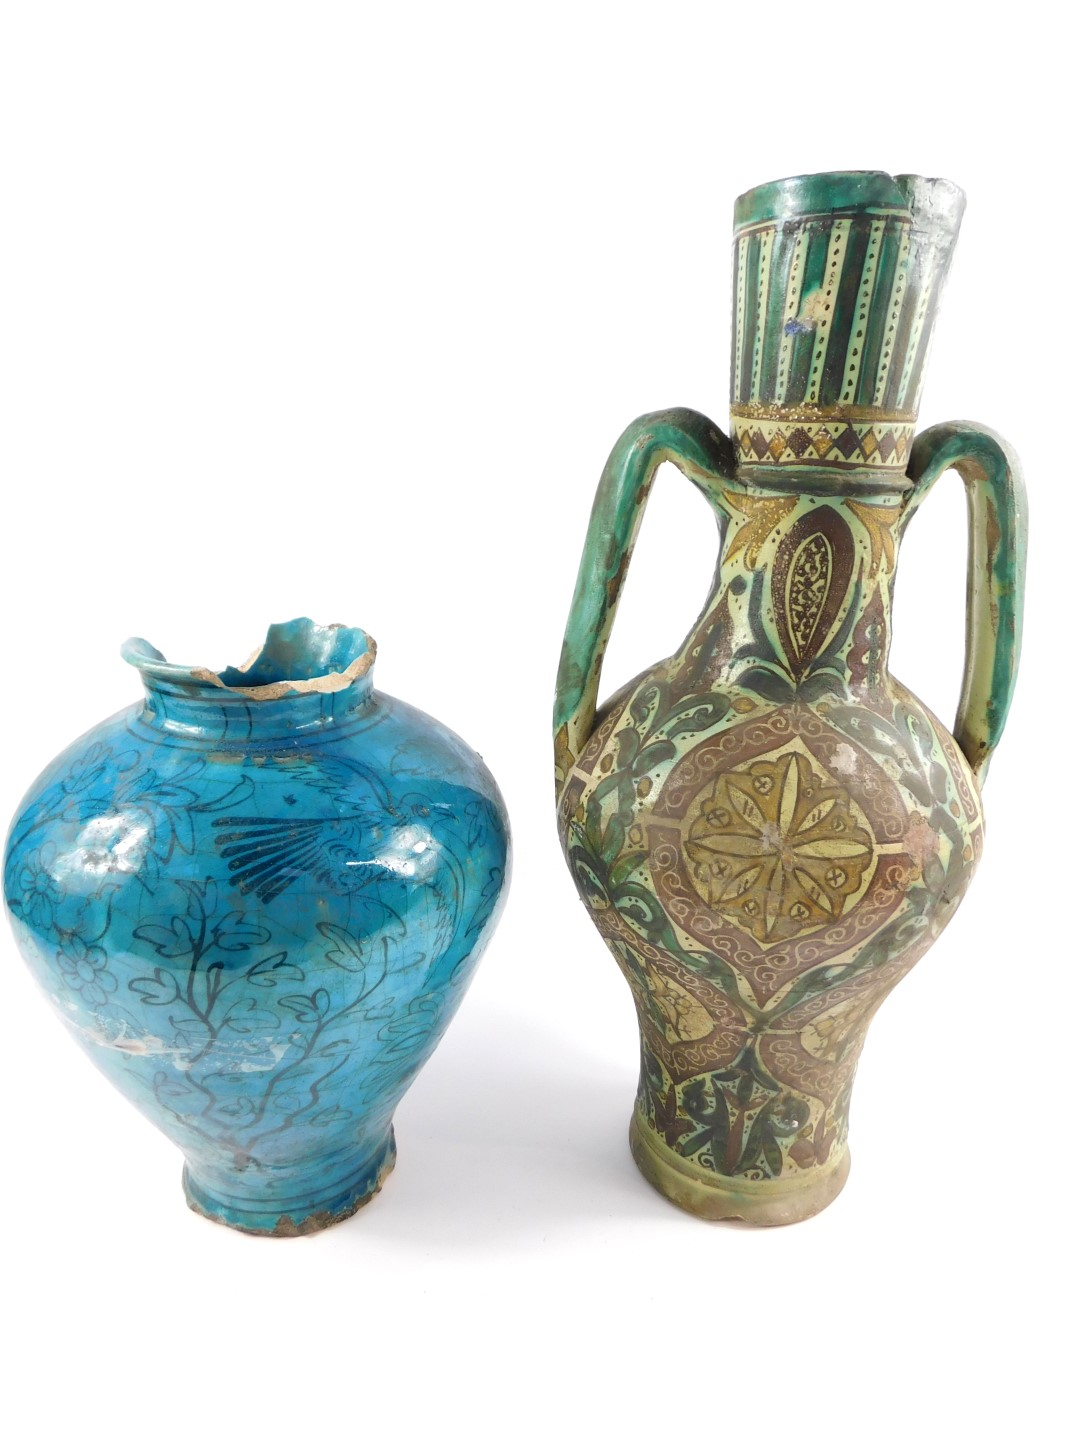 Lot 61 - An Iznik pottery twin handled vase, probably 19thC, of twin handled bulbous form decorated with